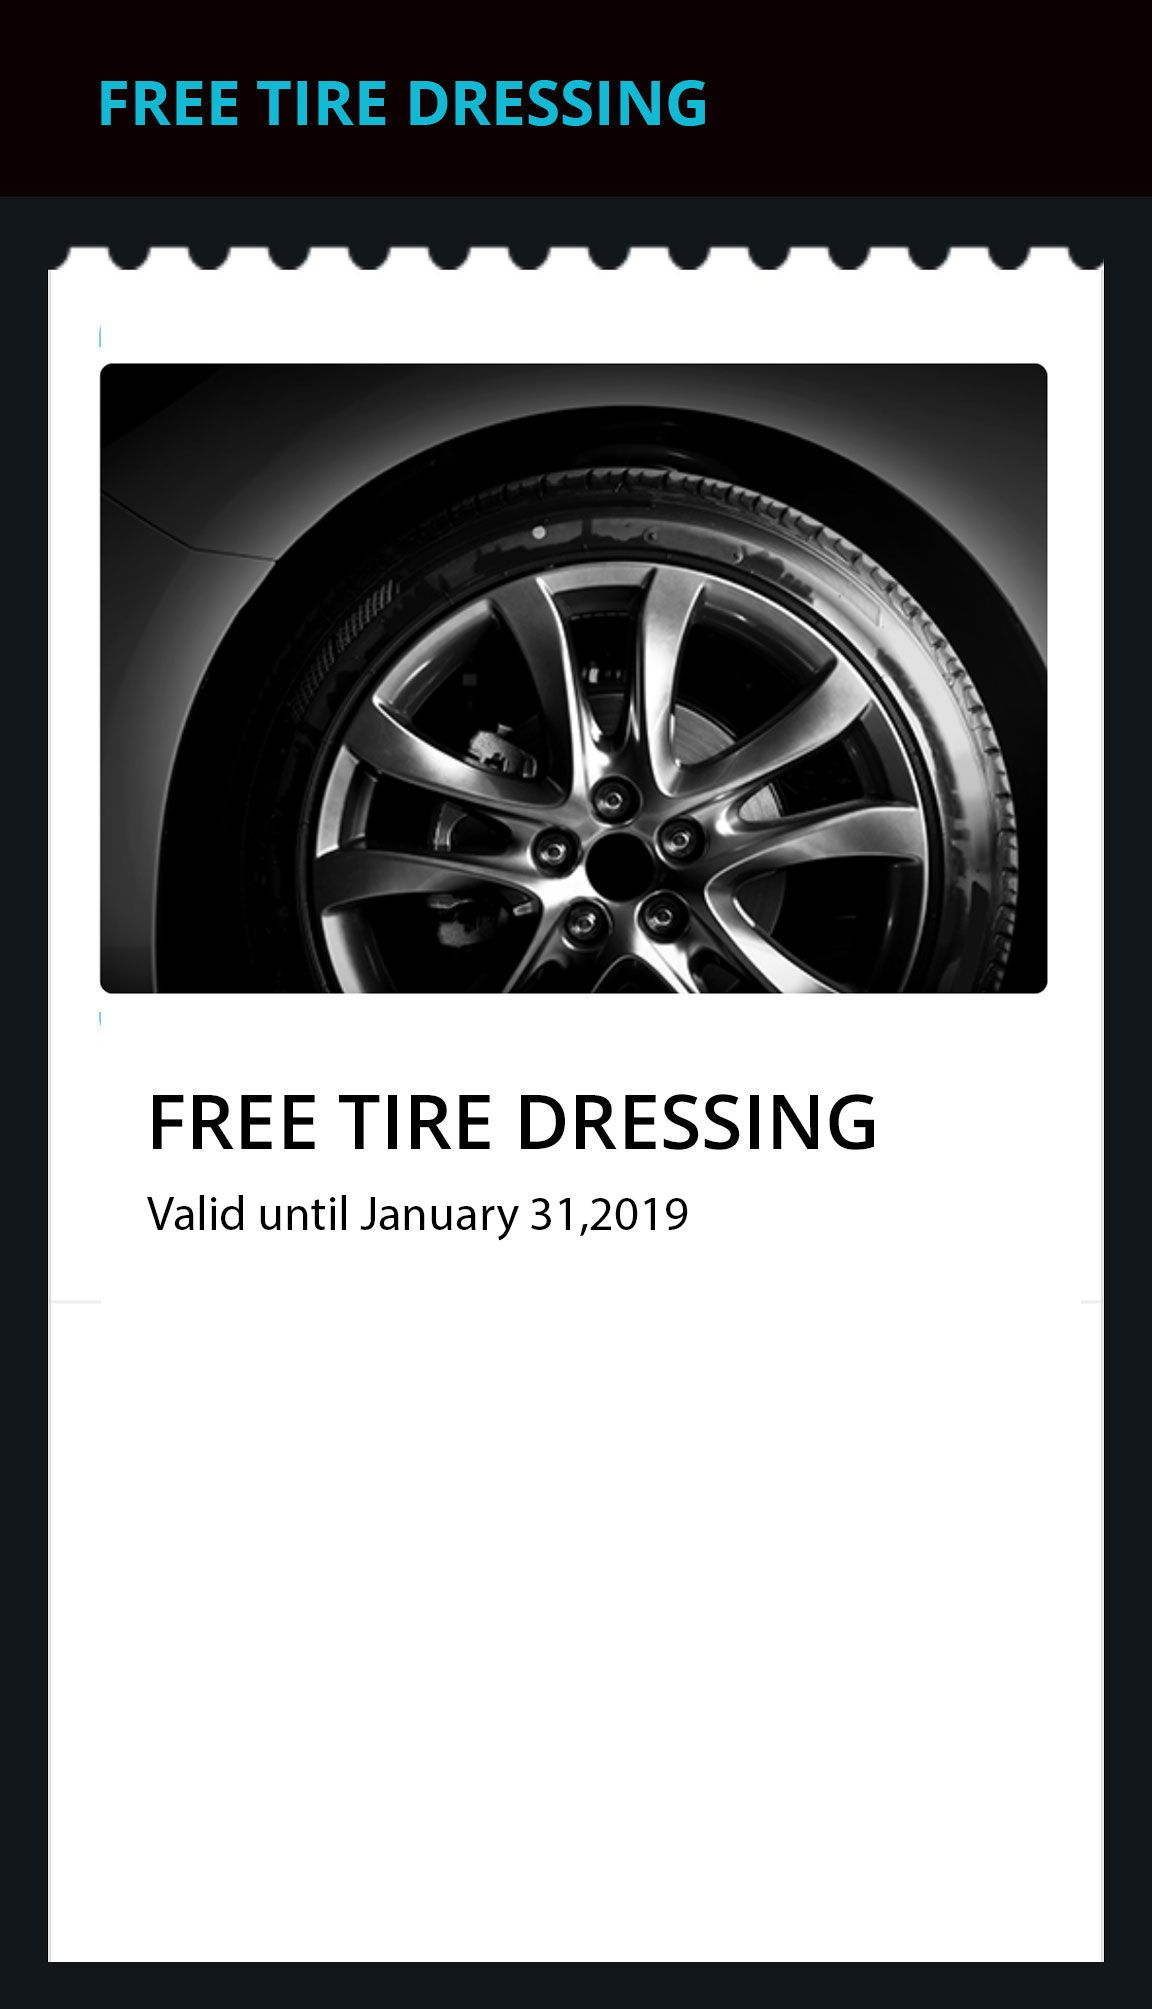 Download In N Out Car Wash App from Apple App Store or